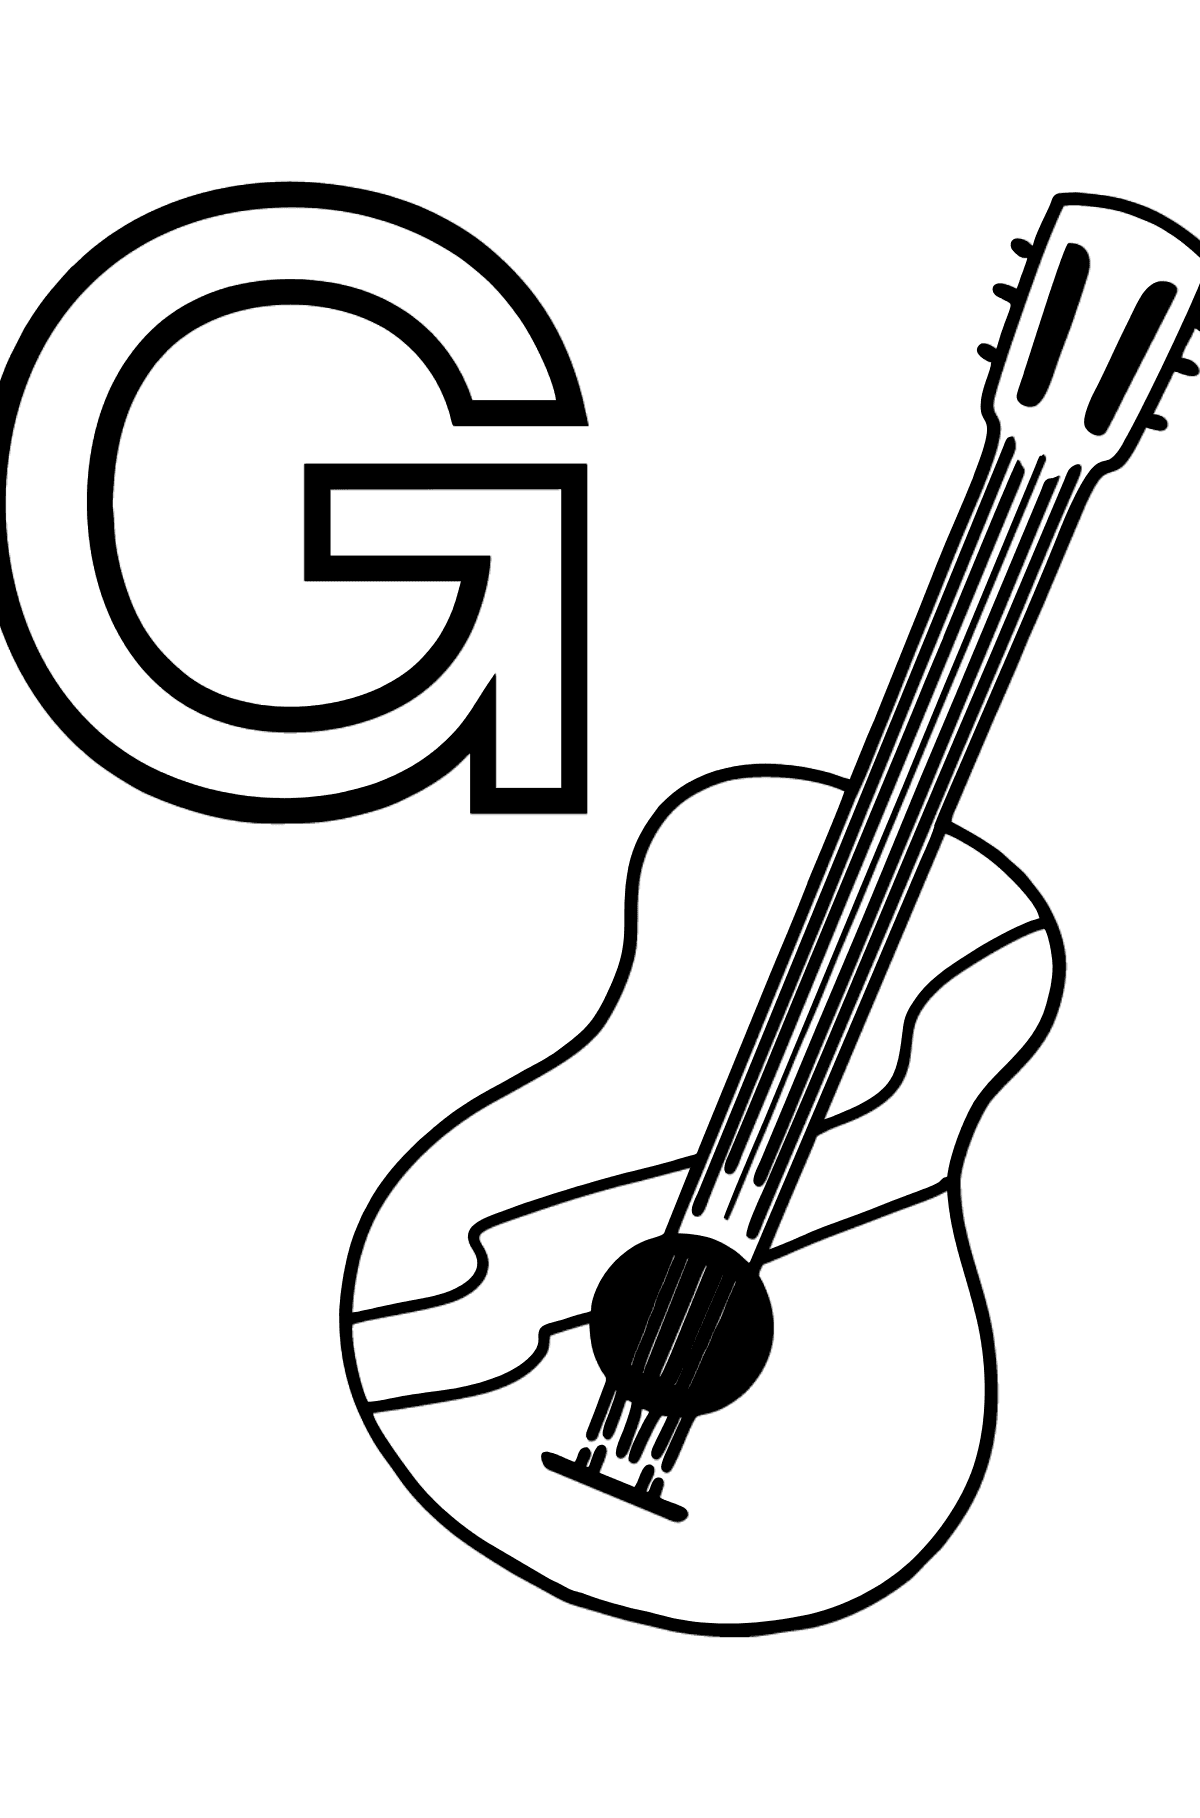 Spanish Letter G coloring pages - GUITARRA - Coloring Pages for Kids